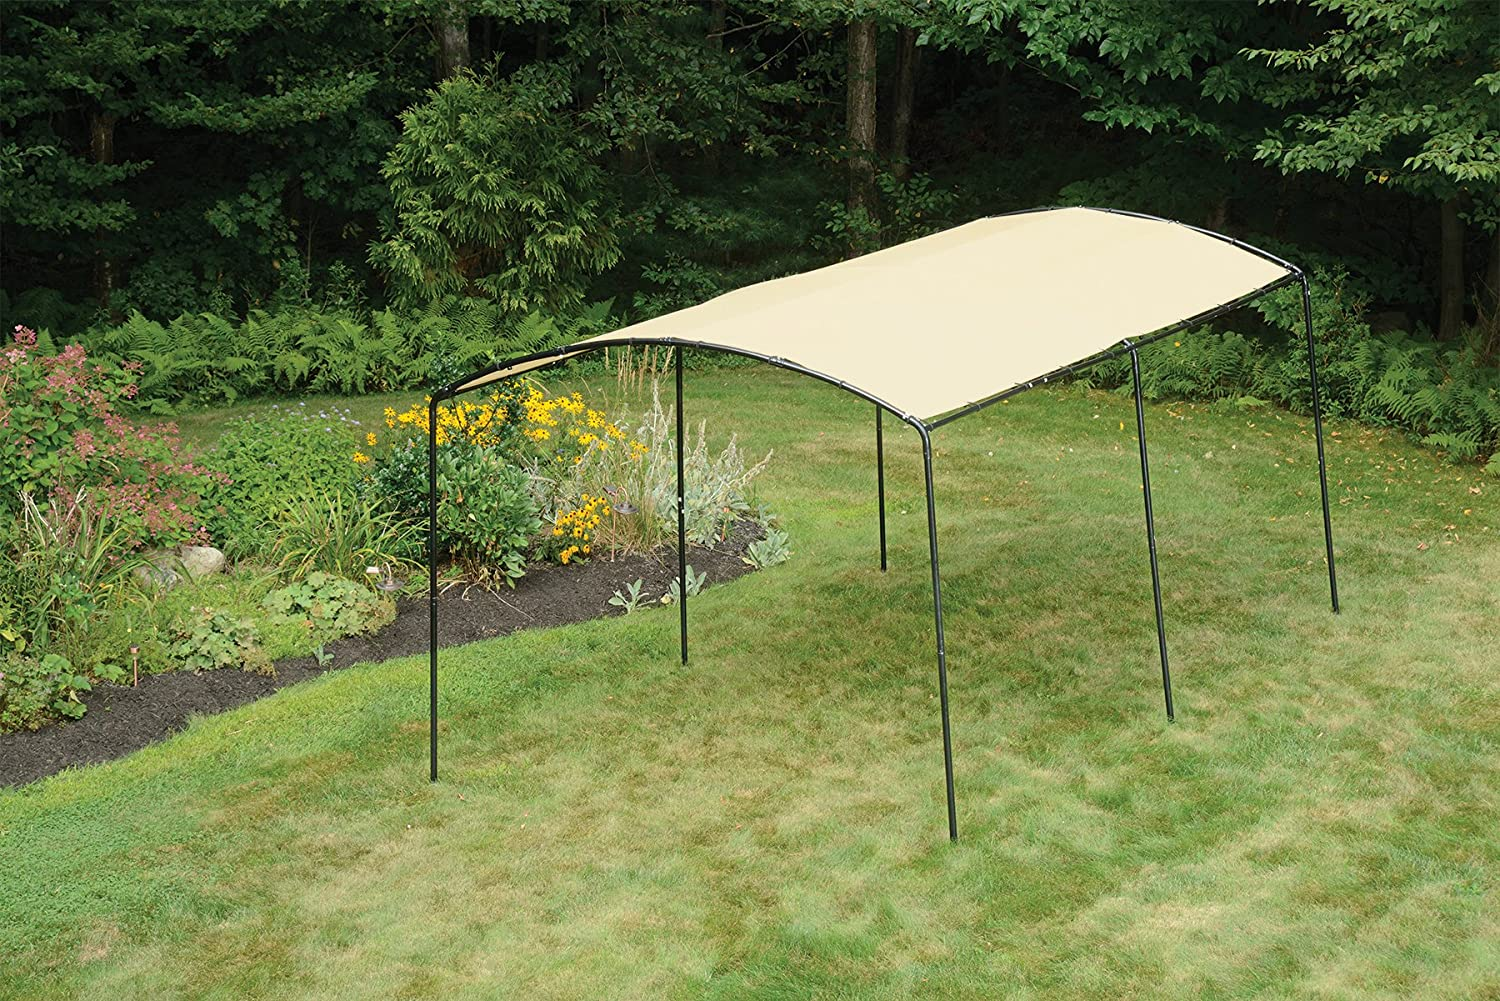 Amazon.com  ShelterLogic Monarc Canopy Sandstone 10 x 18 ft.  Garden u0026 Outdoor & Amazon.com : ShelterLogic Monarc Canopy Sandstone 10 x 18 ft ...